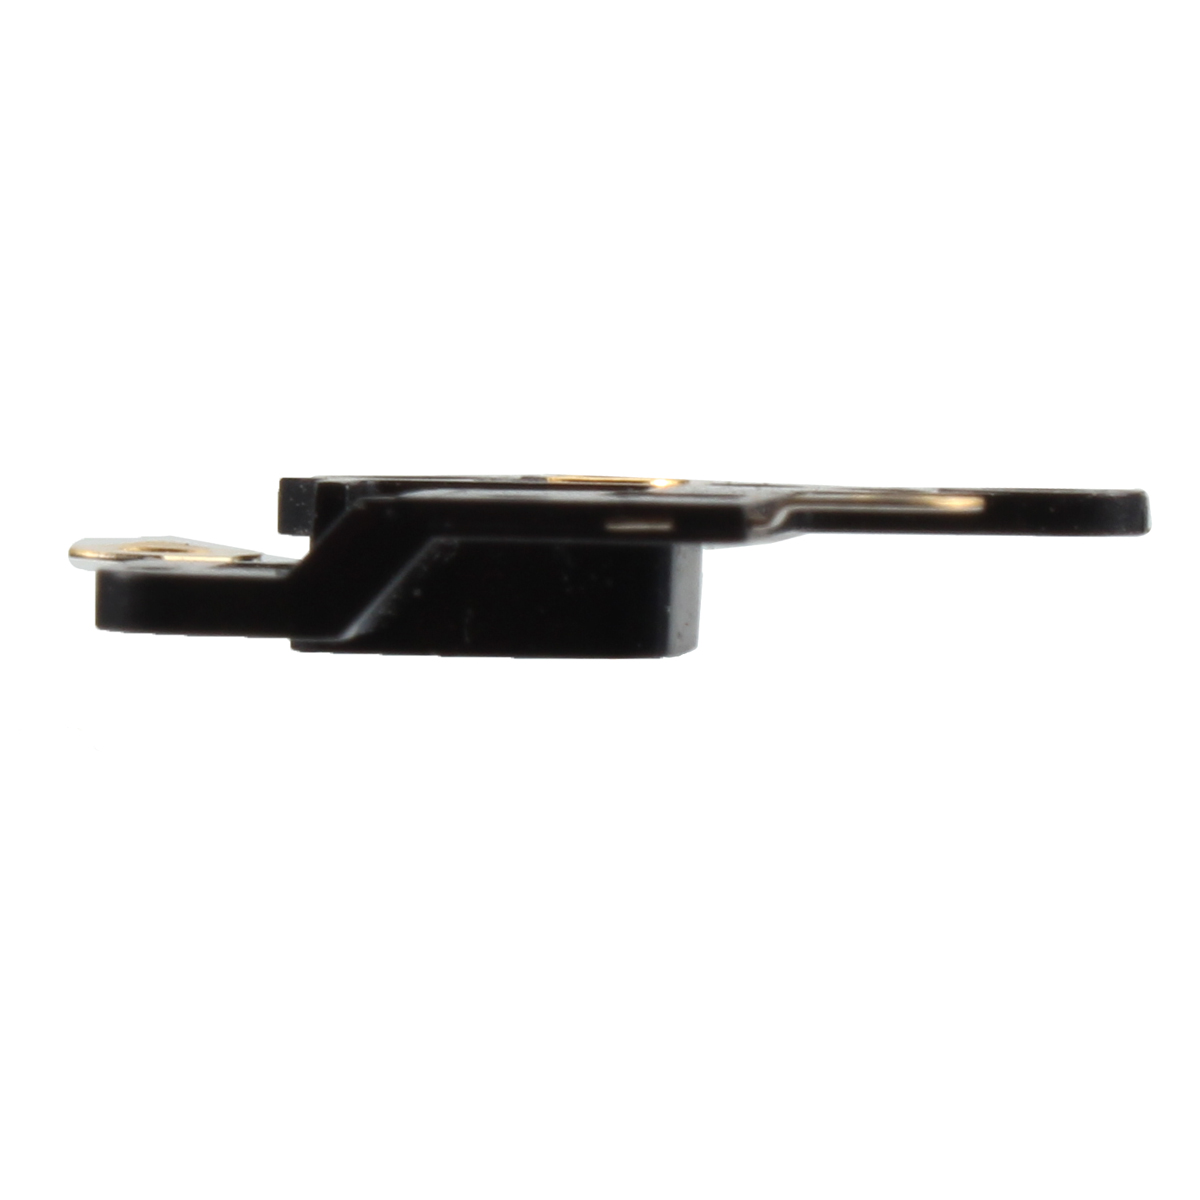 Replacement GPS Module Signal Wifi Antenna Flex Cable Bracket Repair Part for iPhone 6 4.7